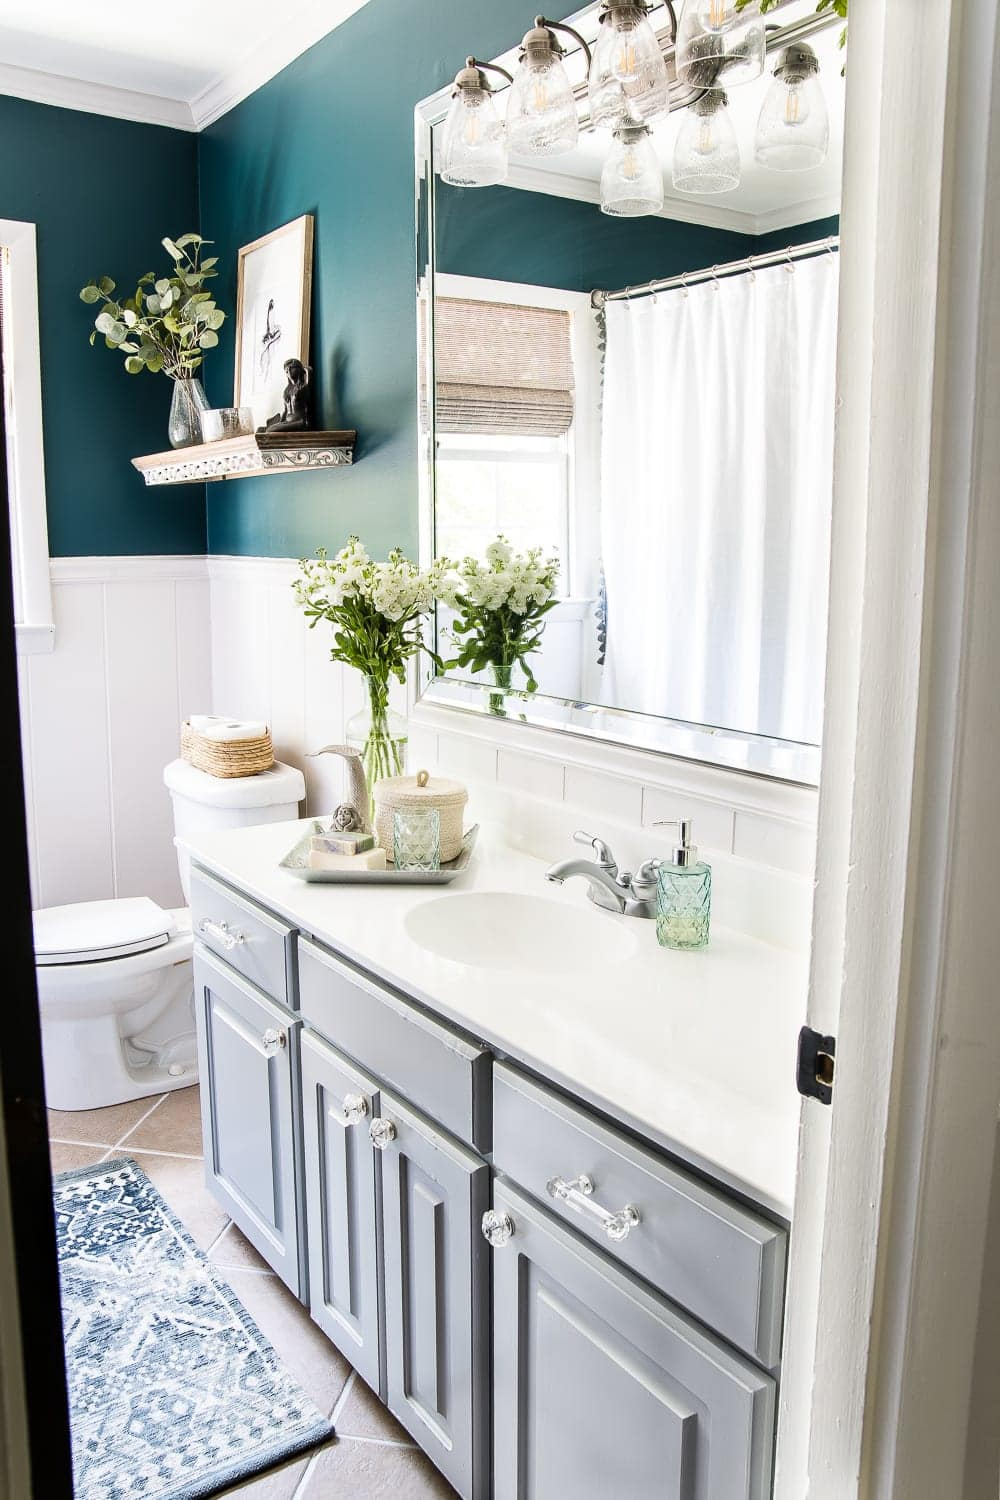 Our Painted Sink Countertop Tub & Shower 8 Months Later - Bless\'er House